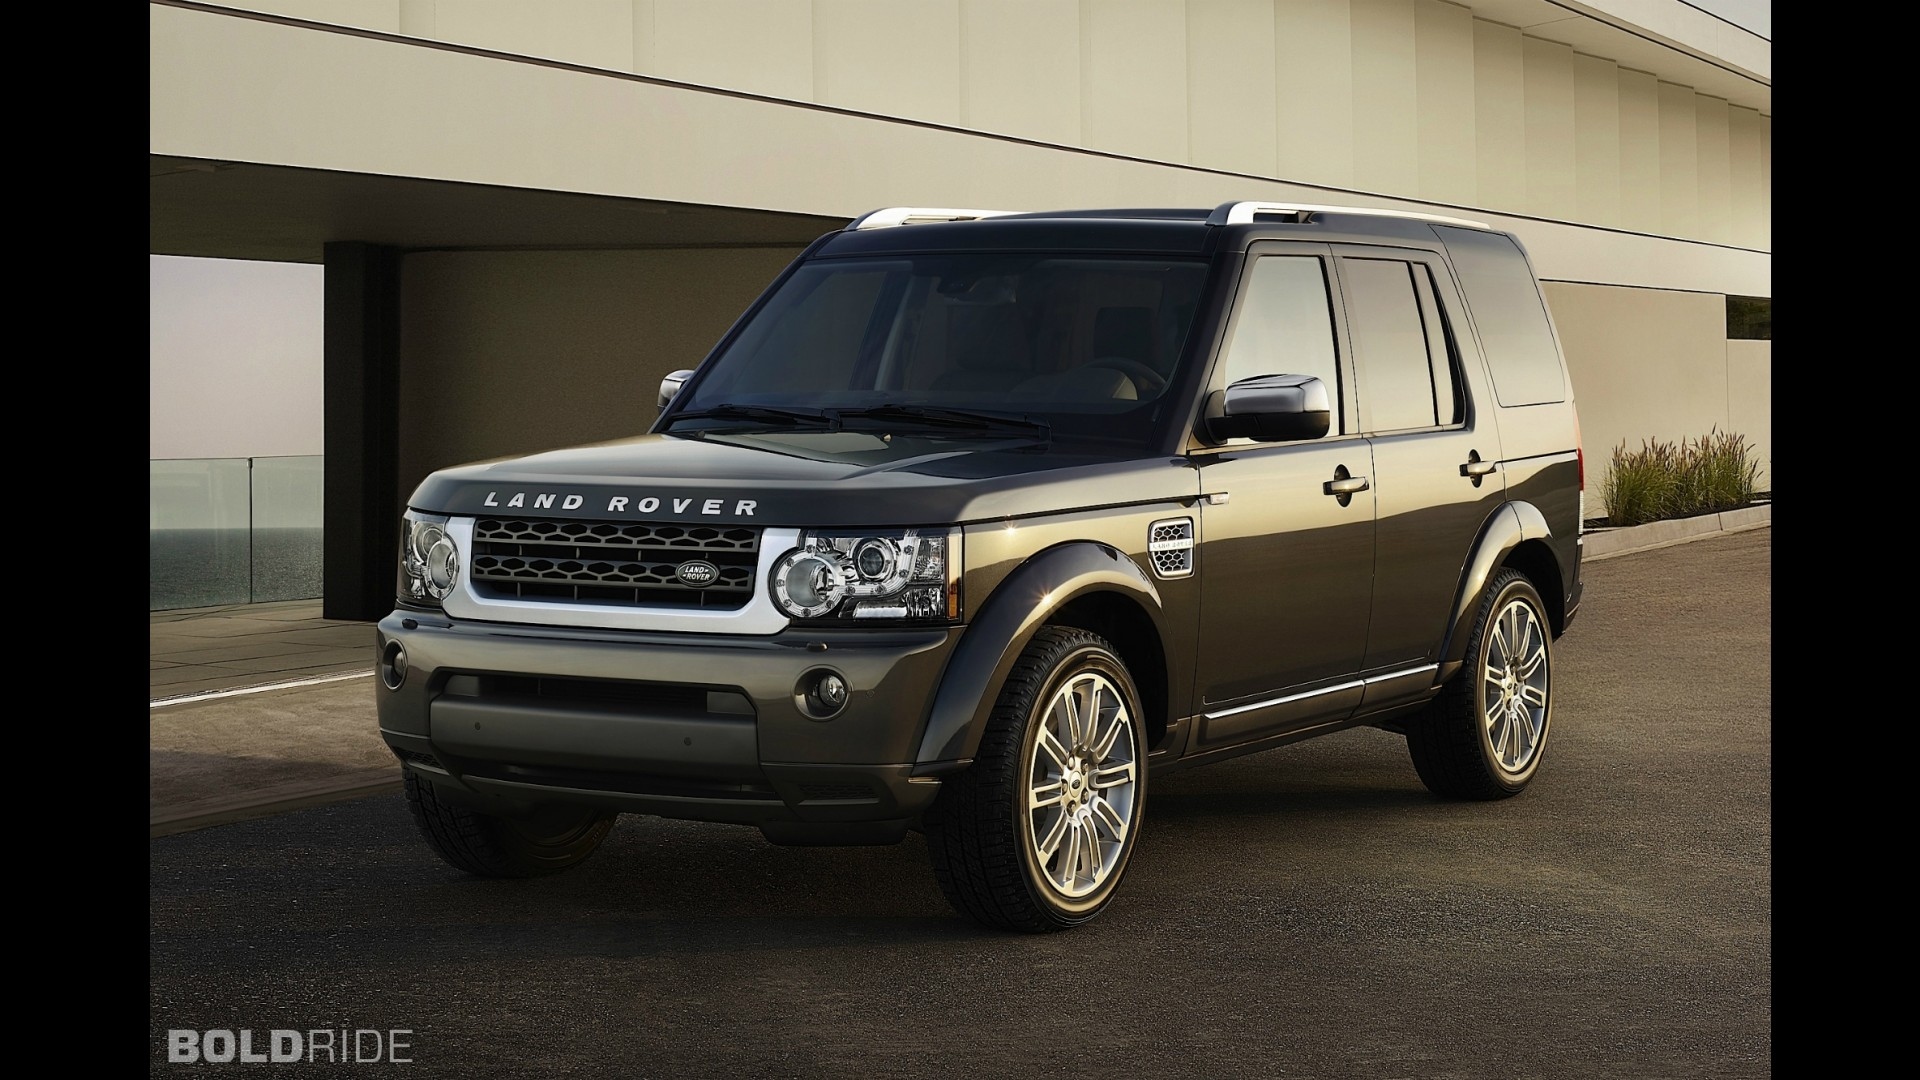 Land rover lr4 limited edition product 2012 04 04 13 41 36